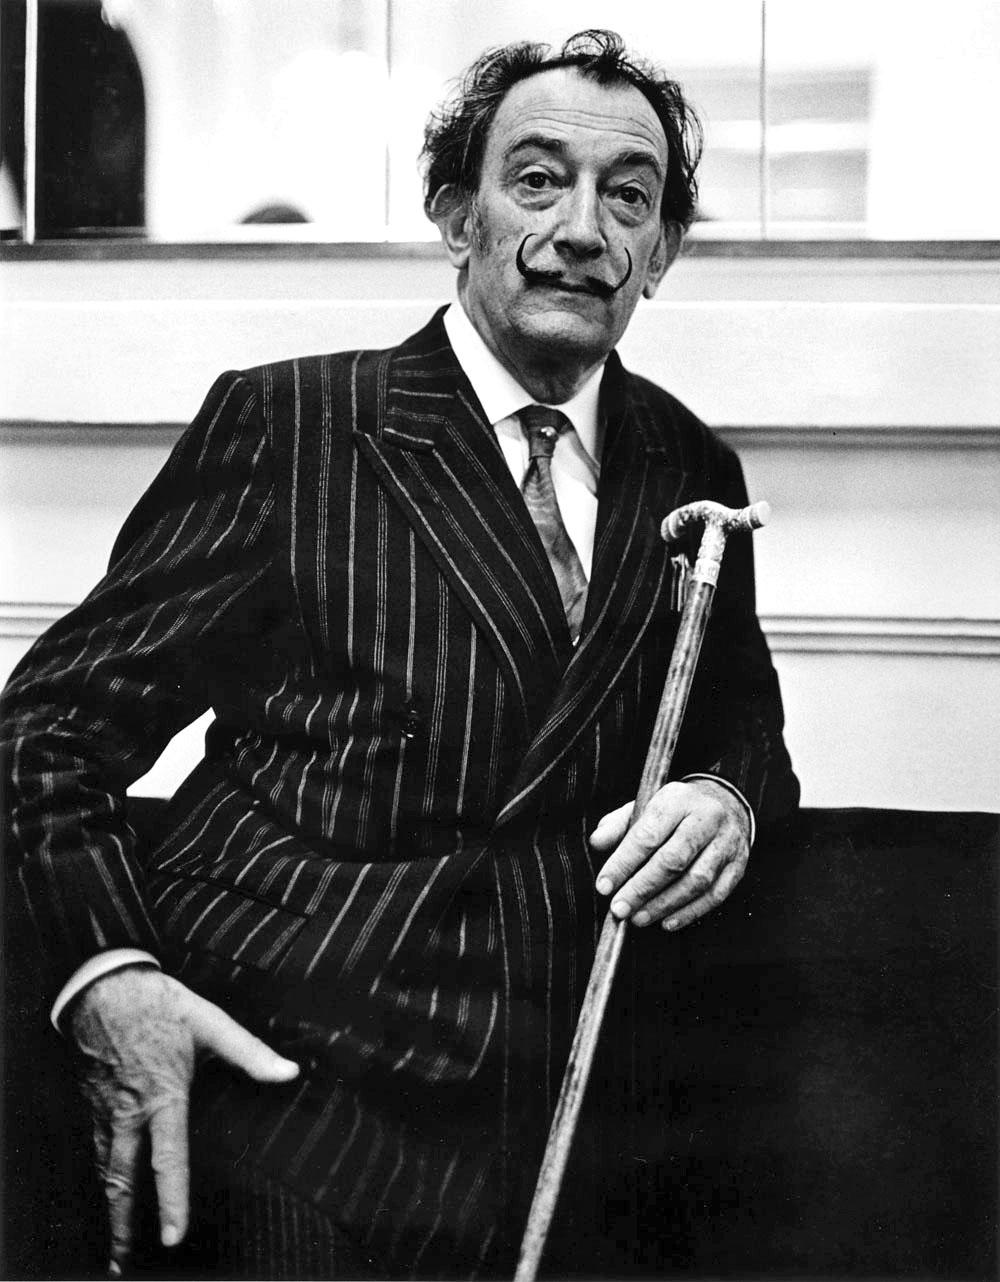 Artist Salvador Dali photographed in Barcelona, signed by Jack Mitchell